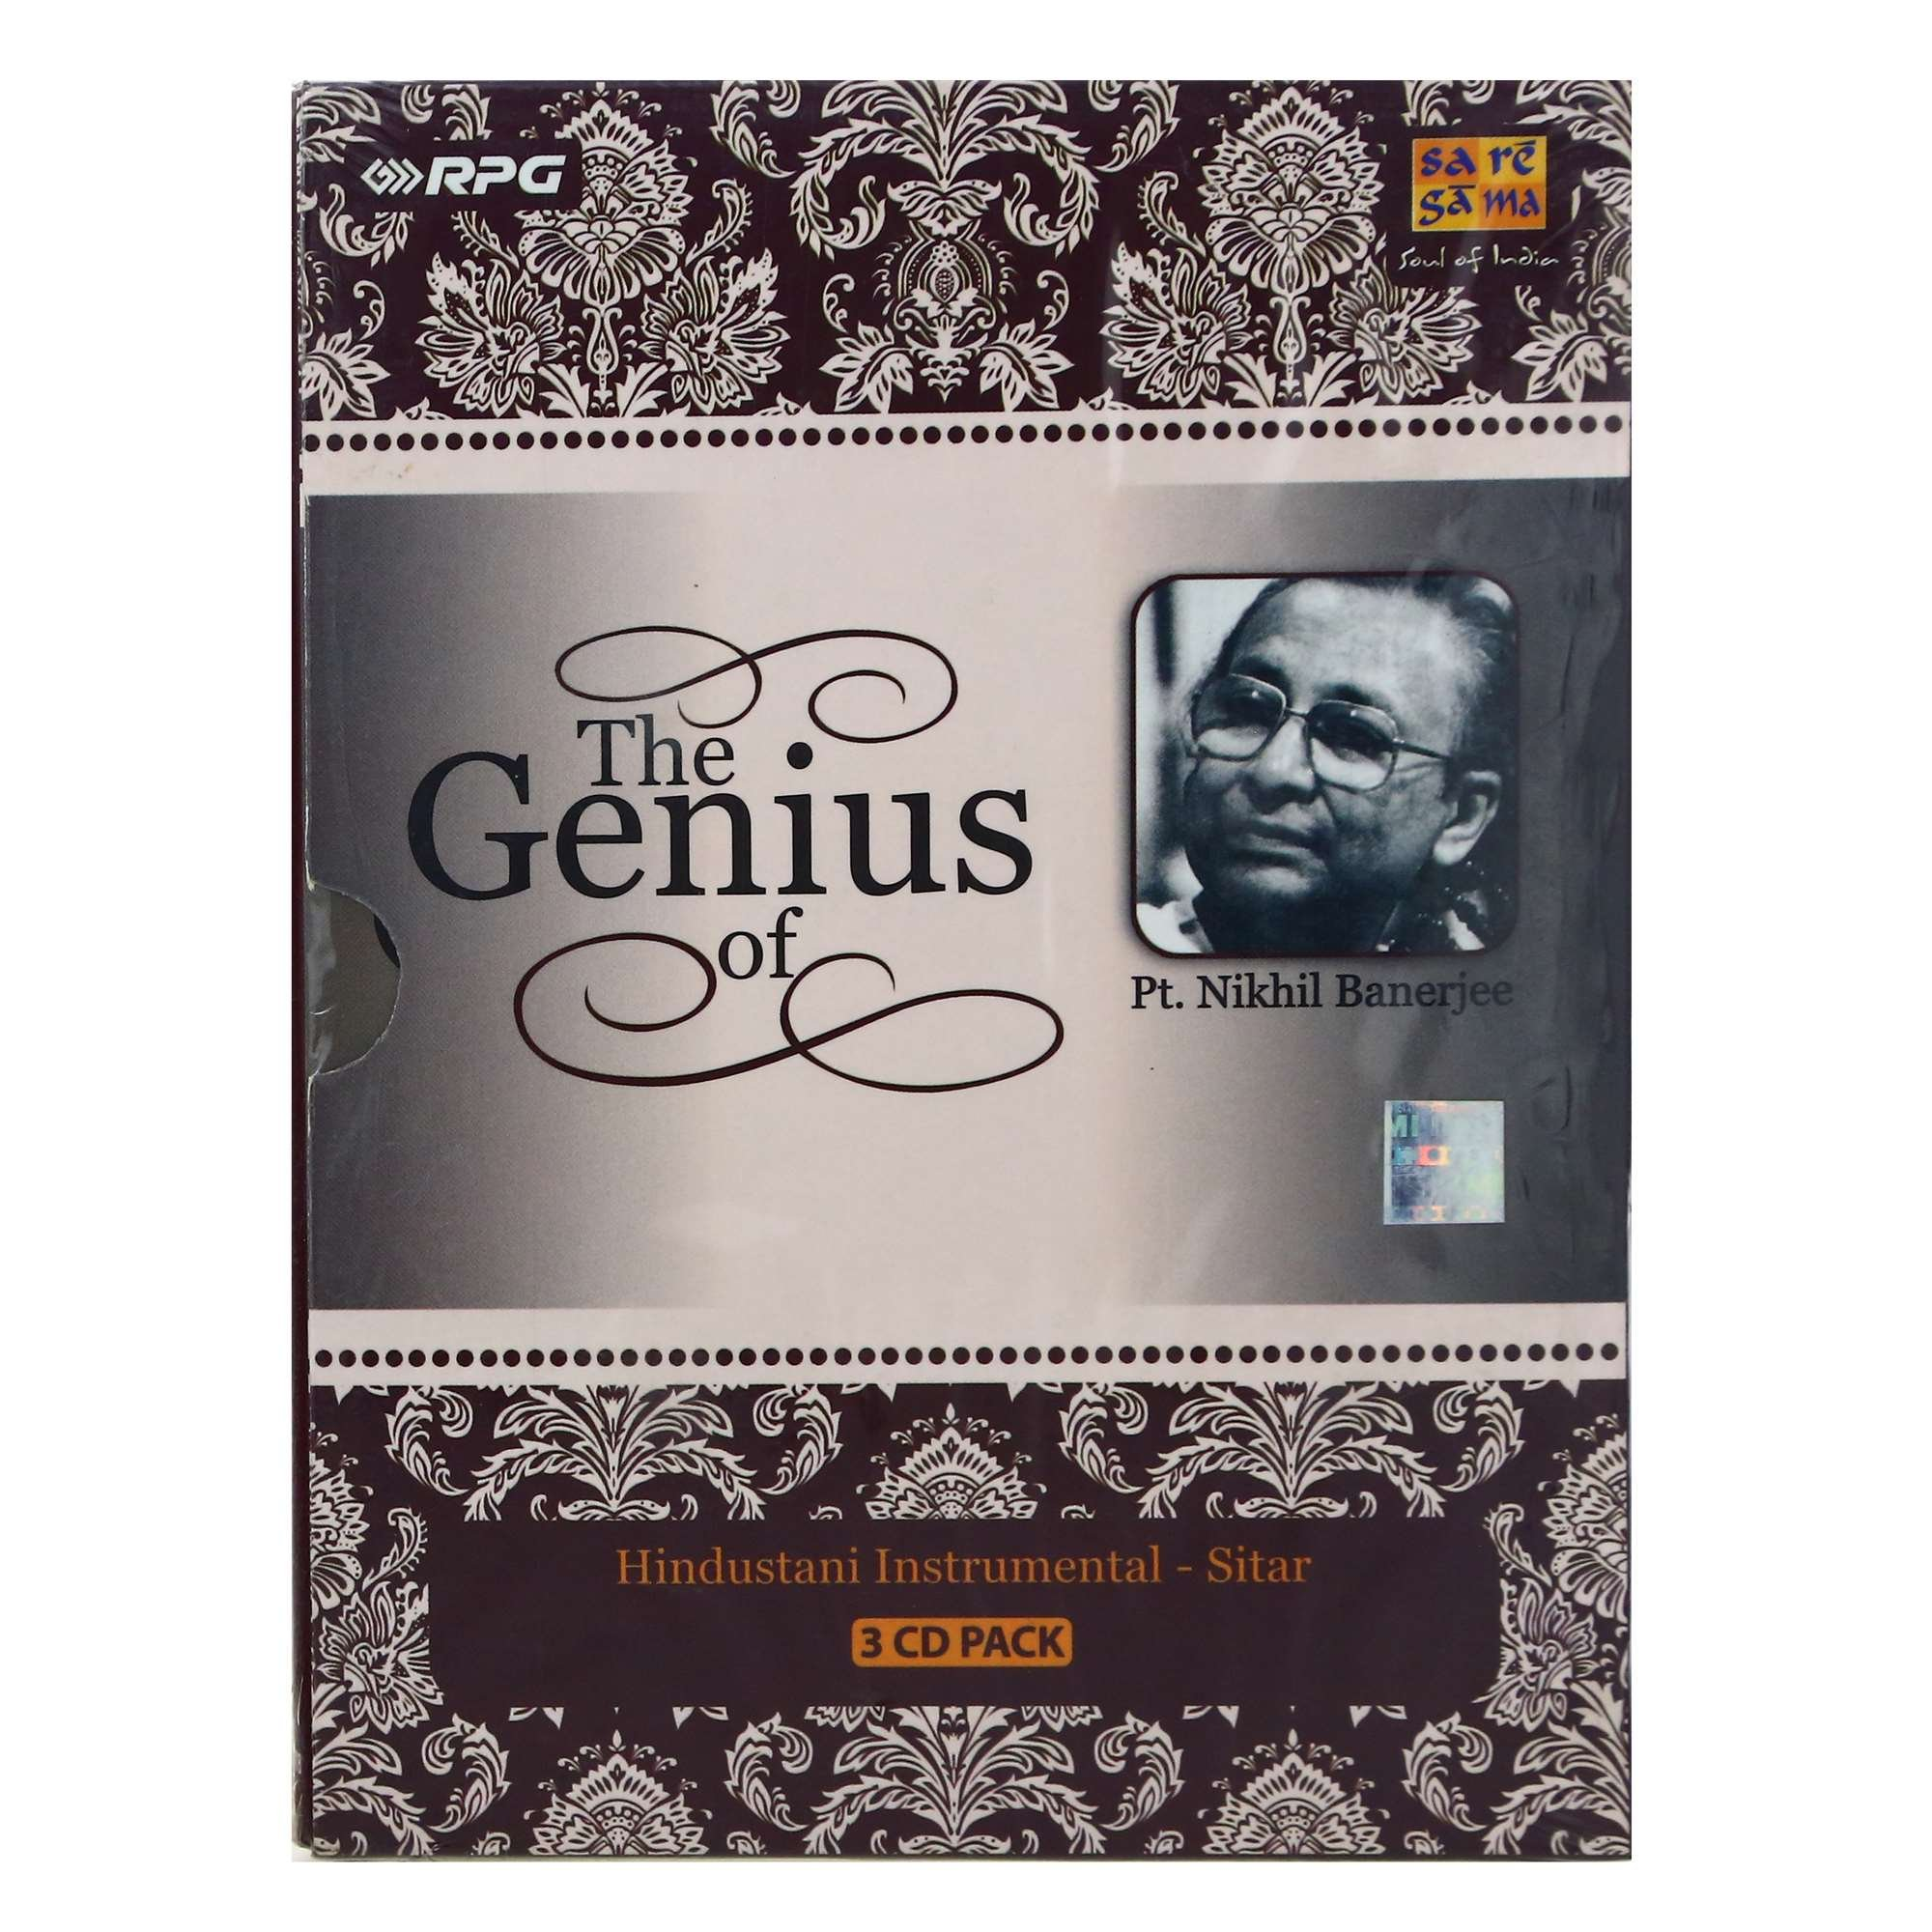 The Genius Of Pt. Nikhil Banerjee (3-CD Pack / Hindustani Classical Instrumental - Sitar / Collector's Pack) by Saregama